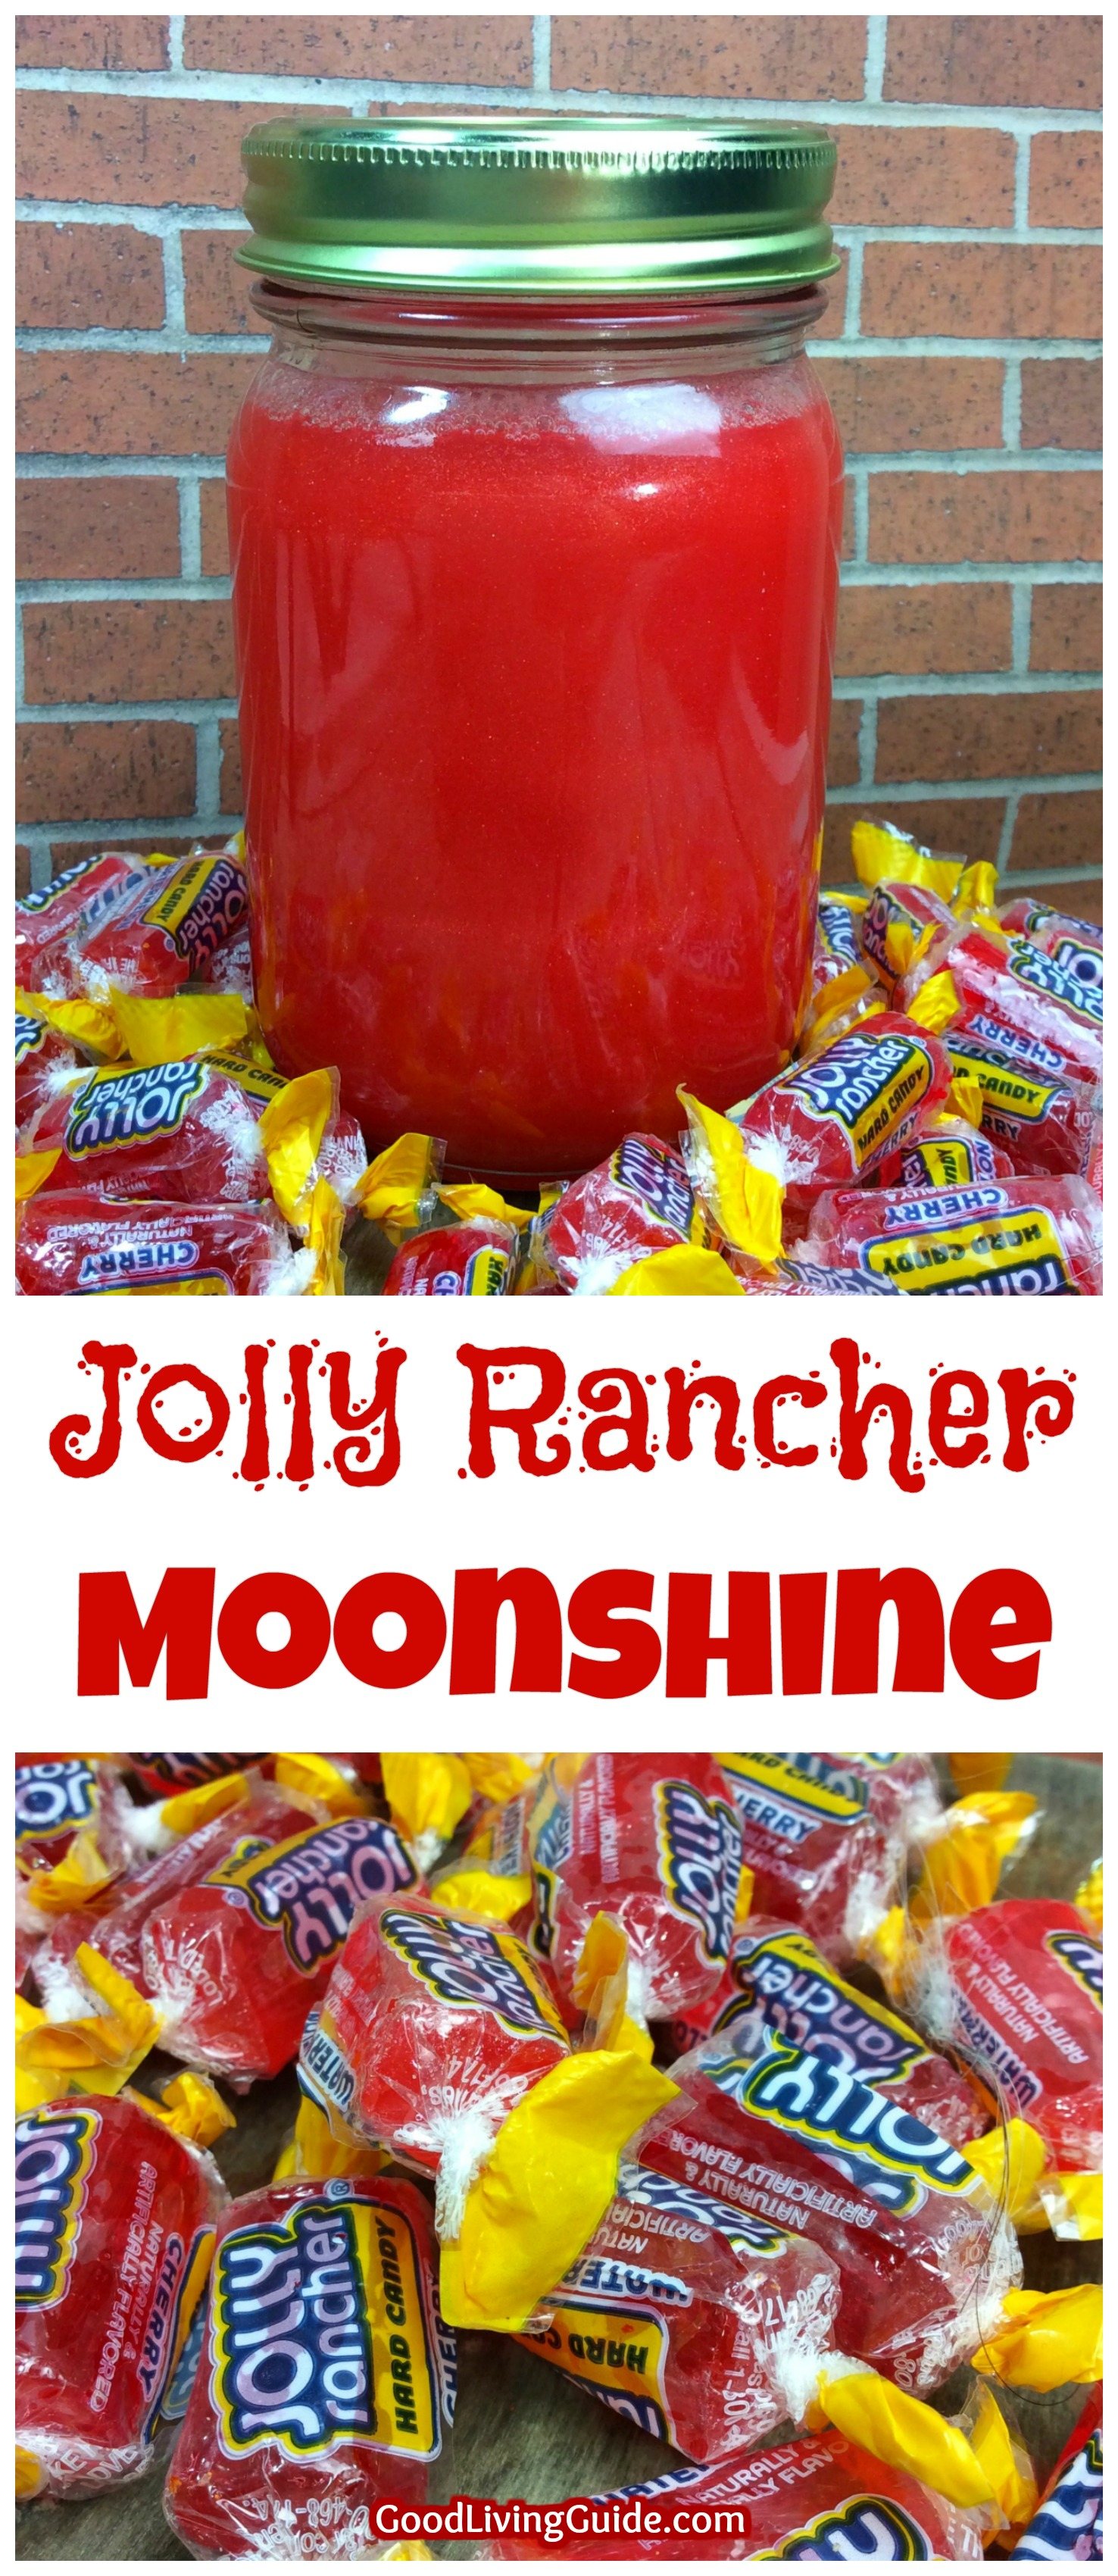 Jolly Rancher Moonshine